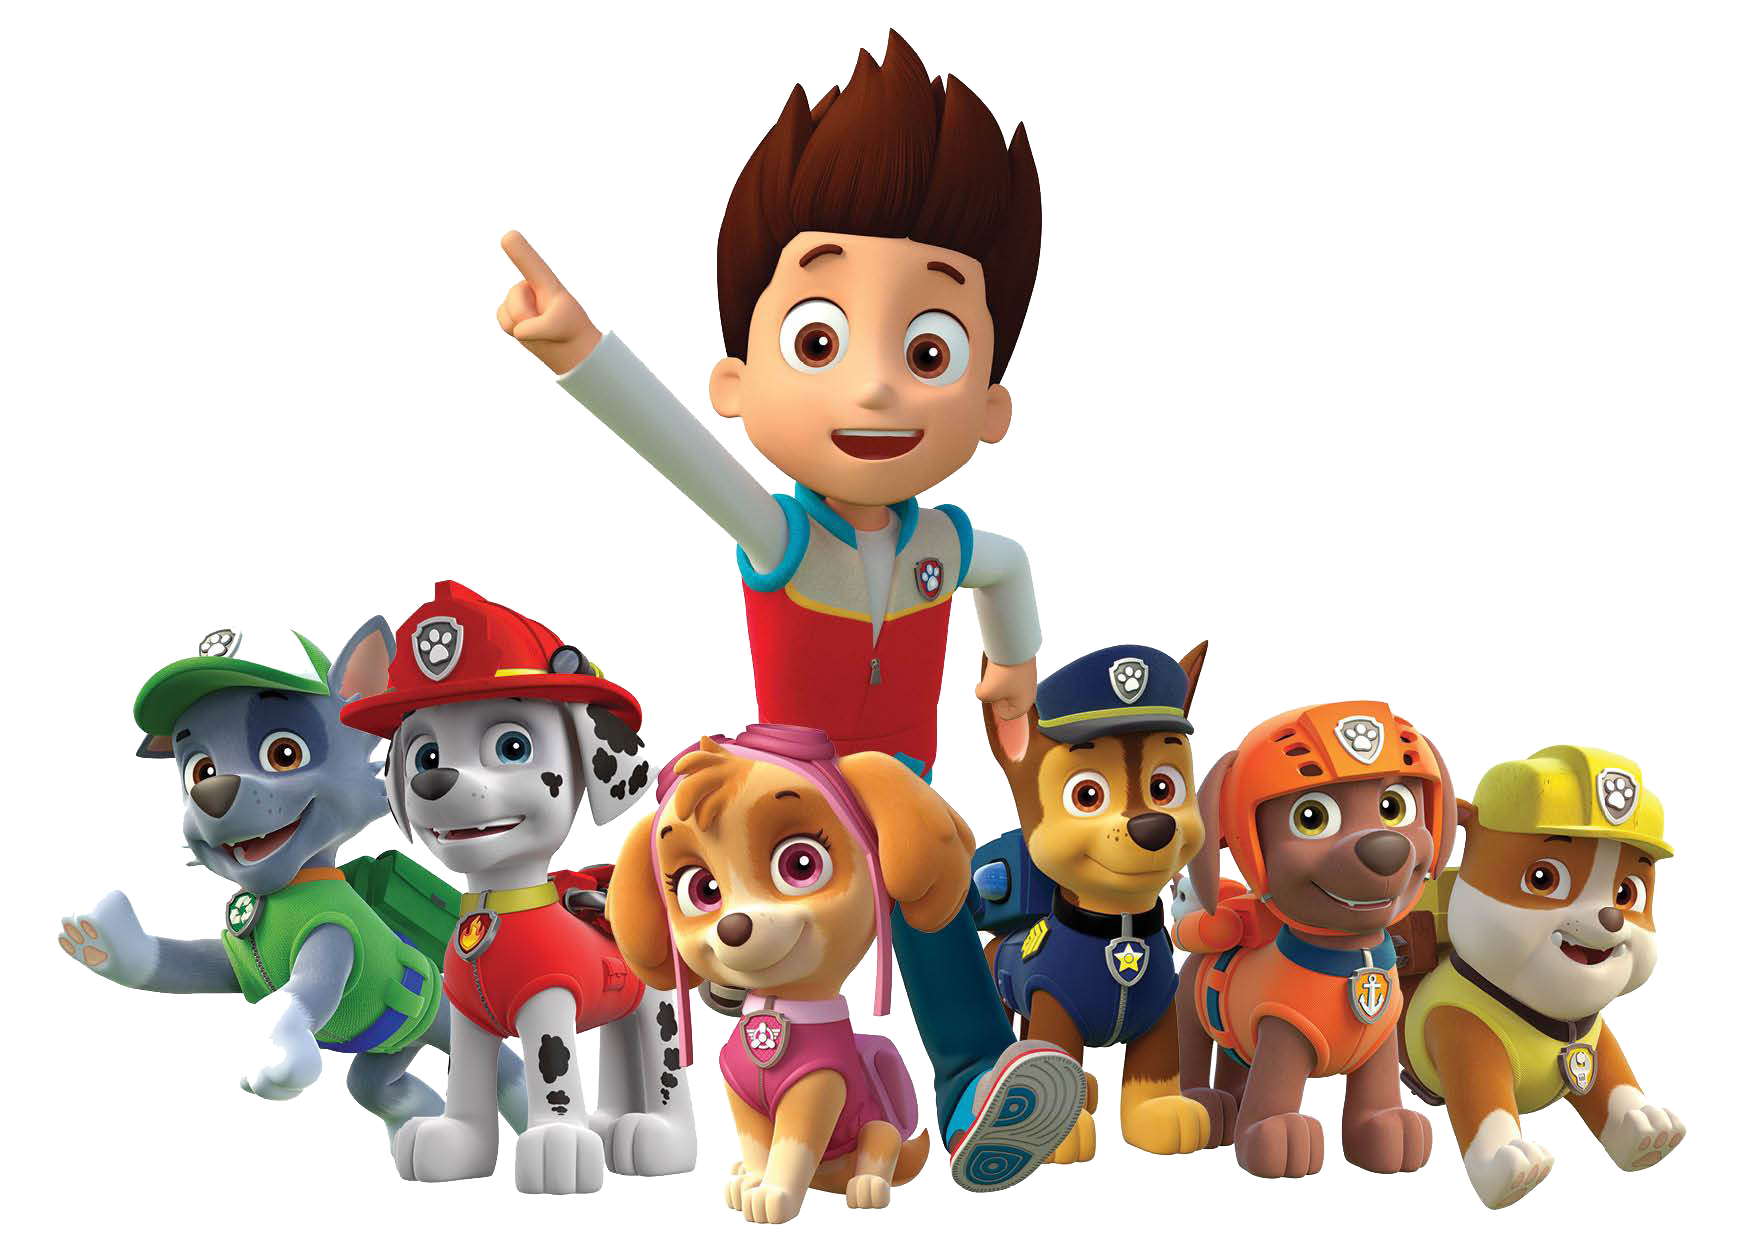 Paw patrol background png. Ryder all characters